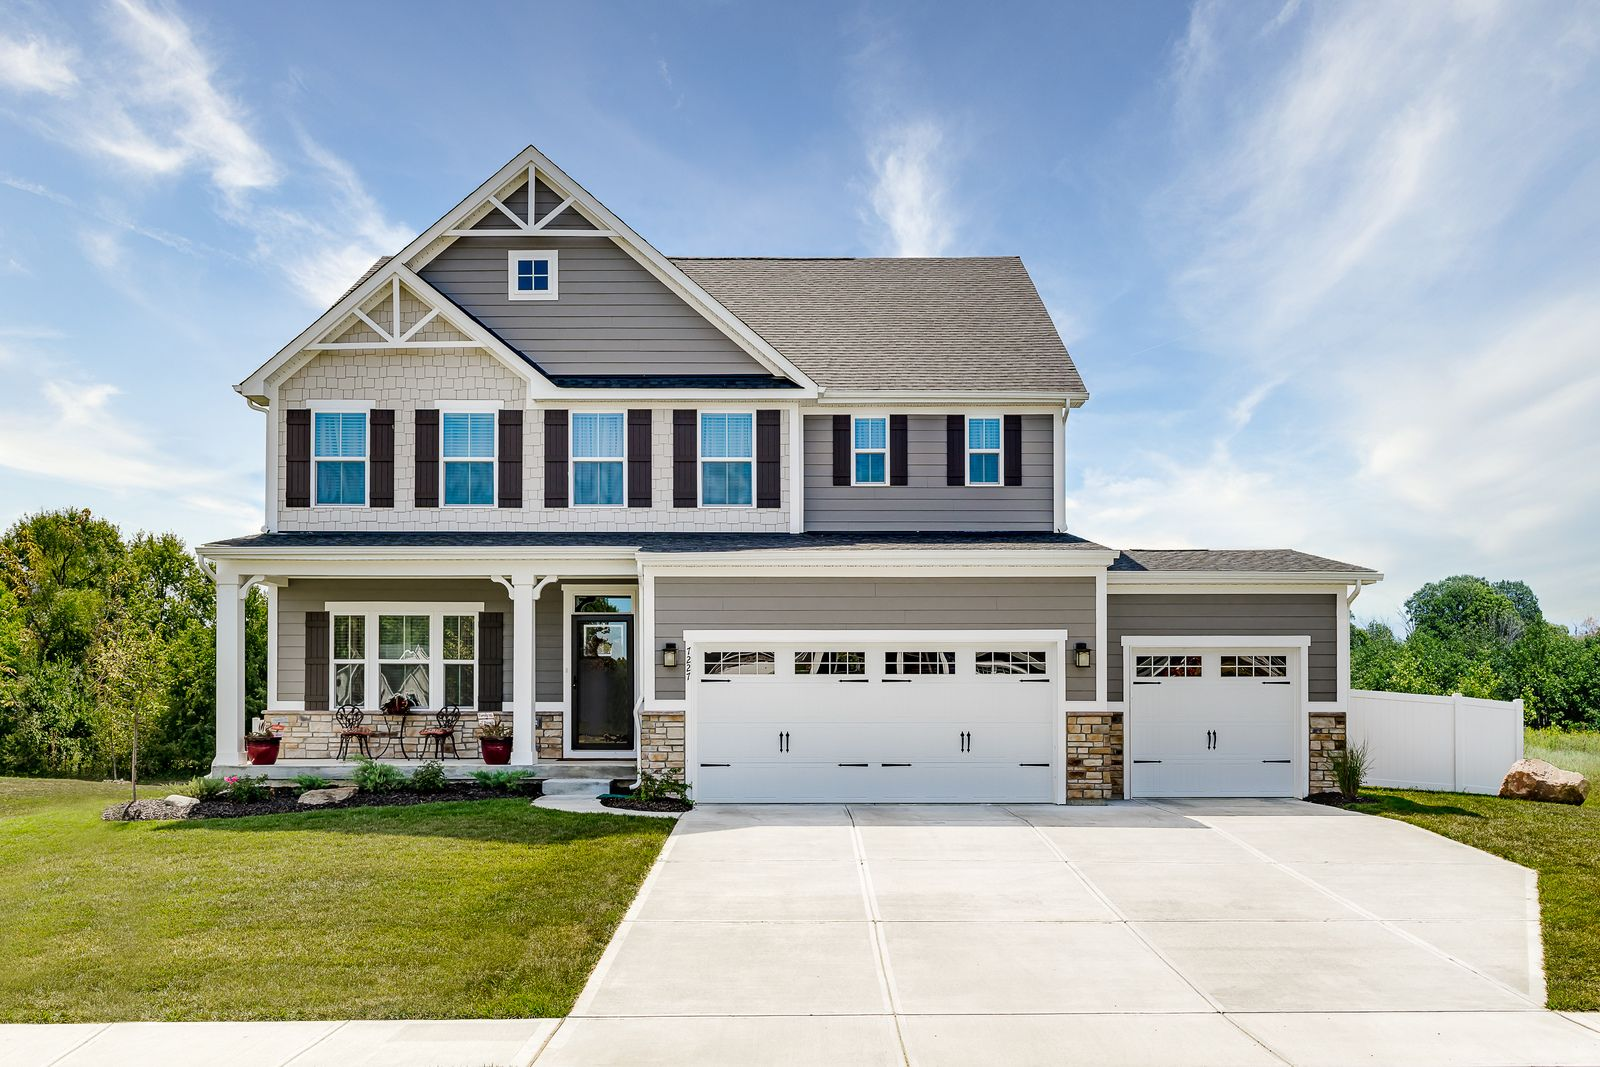 WELCOME HOME TO LEXINGTON FARMS:New homes in a peaceful community setting with spacious and private yards. 3-car garage per plan, walking/biking trails to Washington Square. From mid $200s. Click here to schedule your visit!